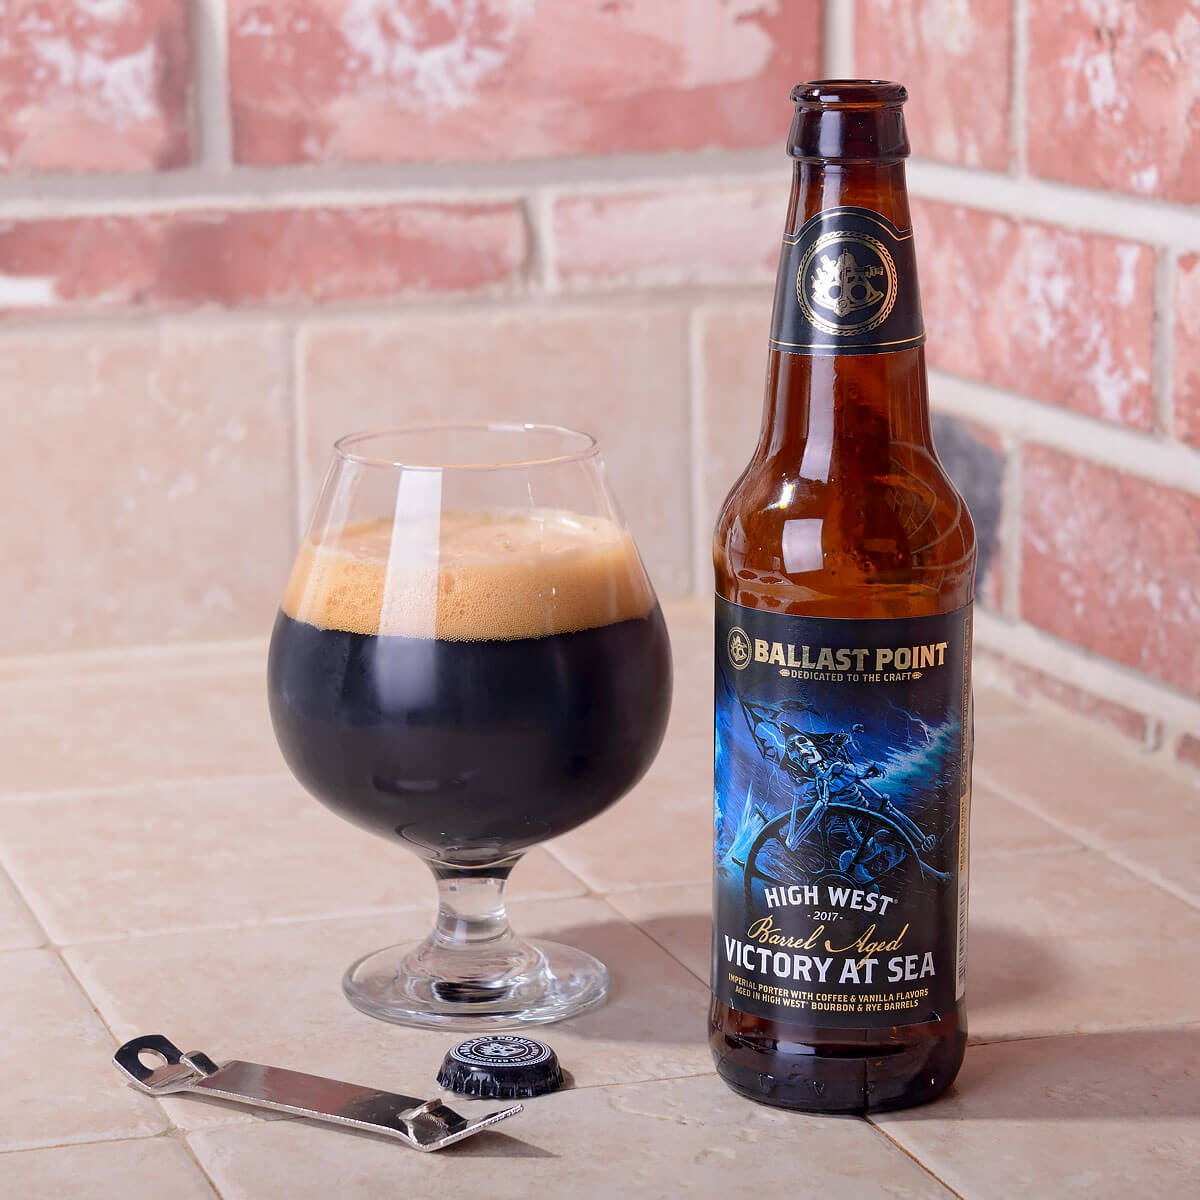 High West Barrel Aged Victory at Sea, an American Porter by Ballast Point Brewing Company